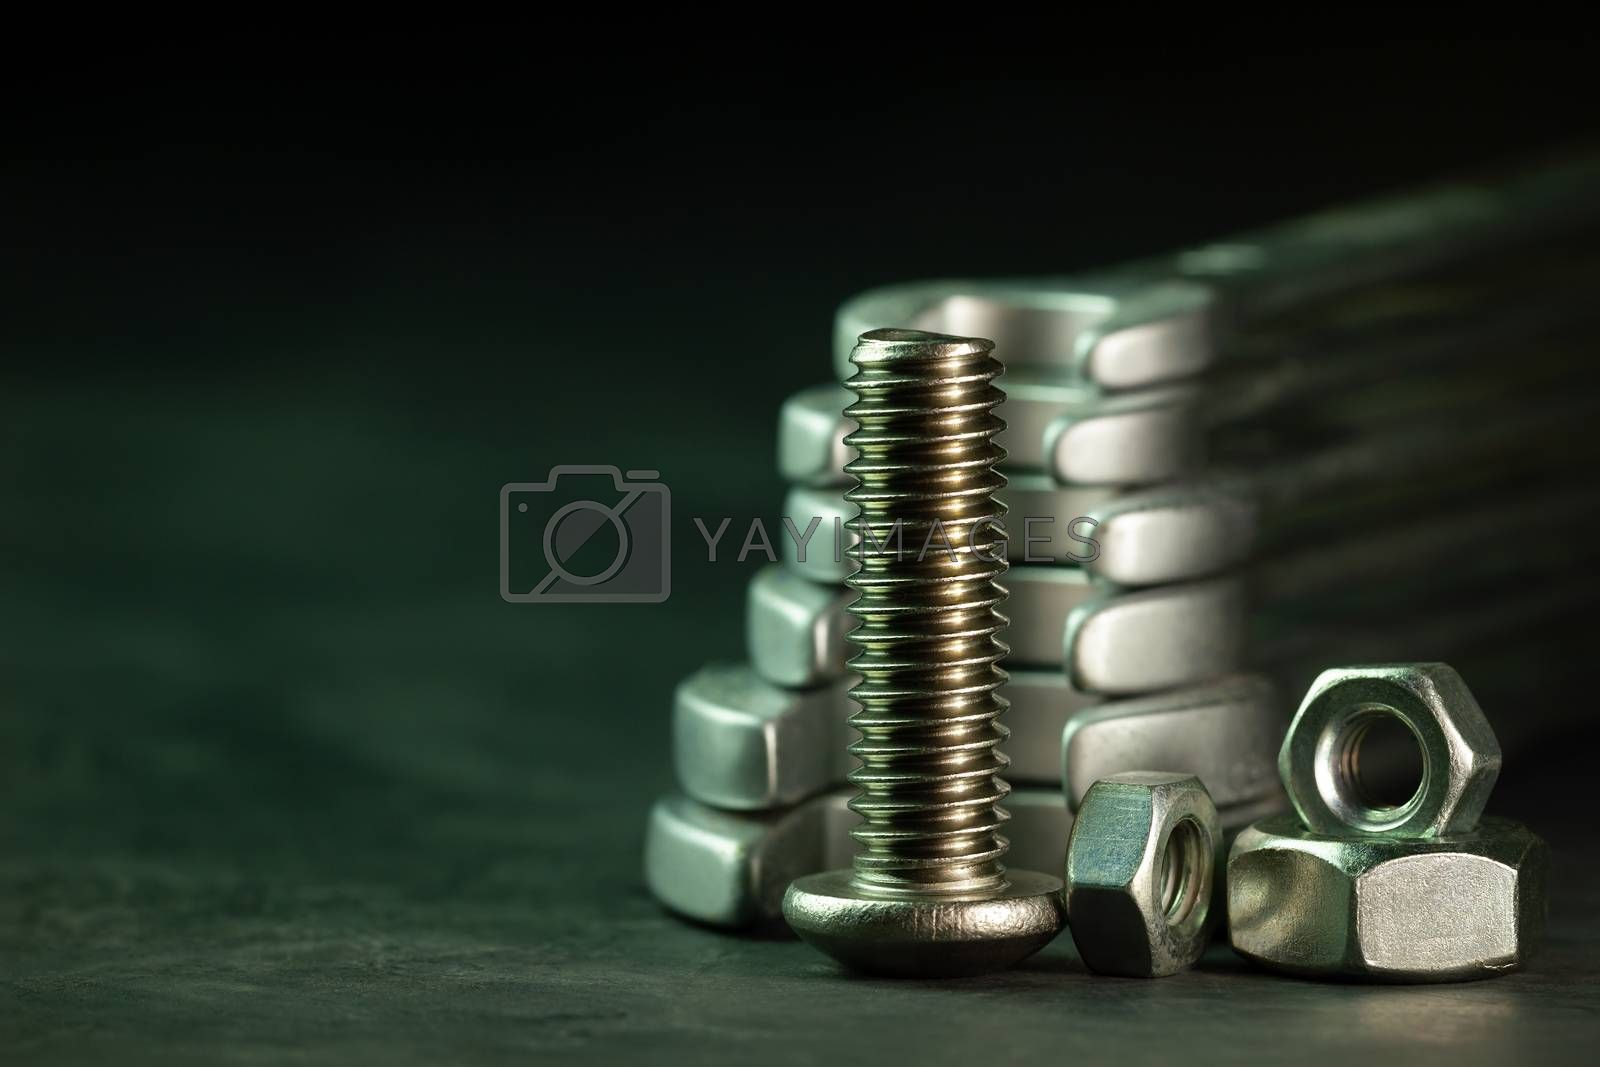 Bolt nuts and wrench on cement floor in darkness. Closeup and copy space for text. Concept of mechanical engineering jobs.